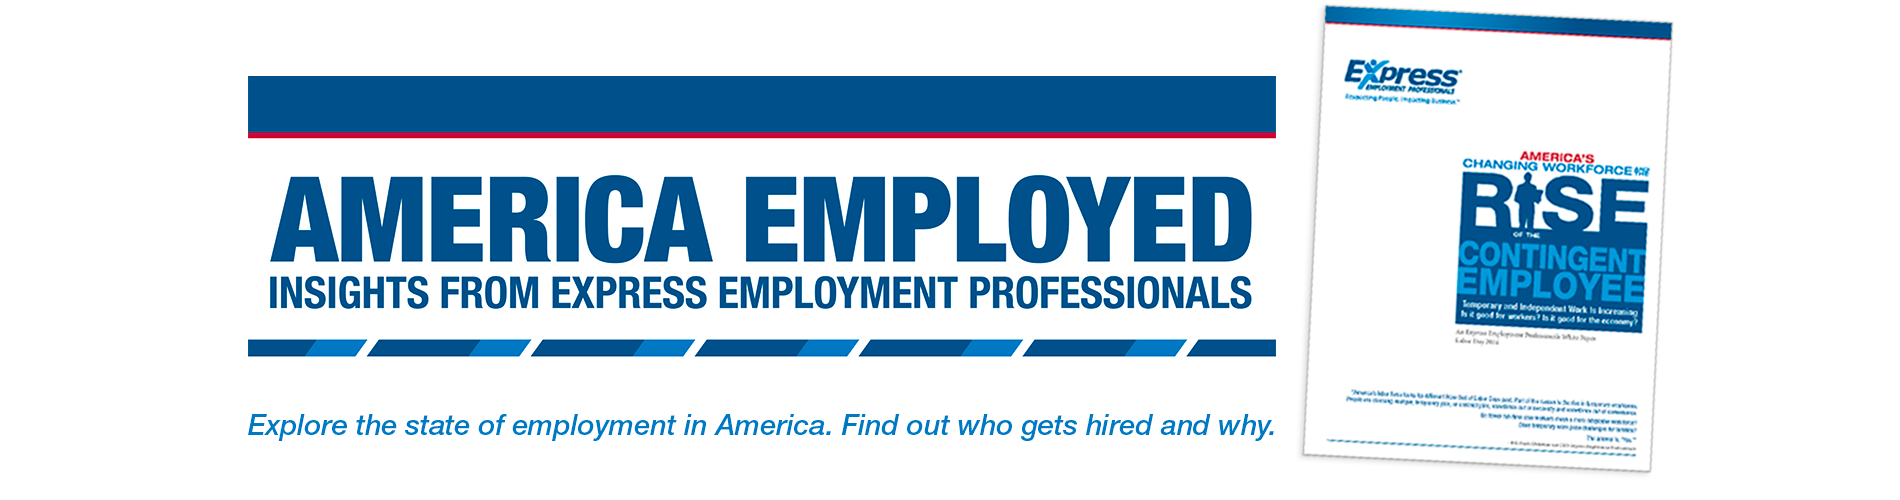 America Employed Home Page Banner Image